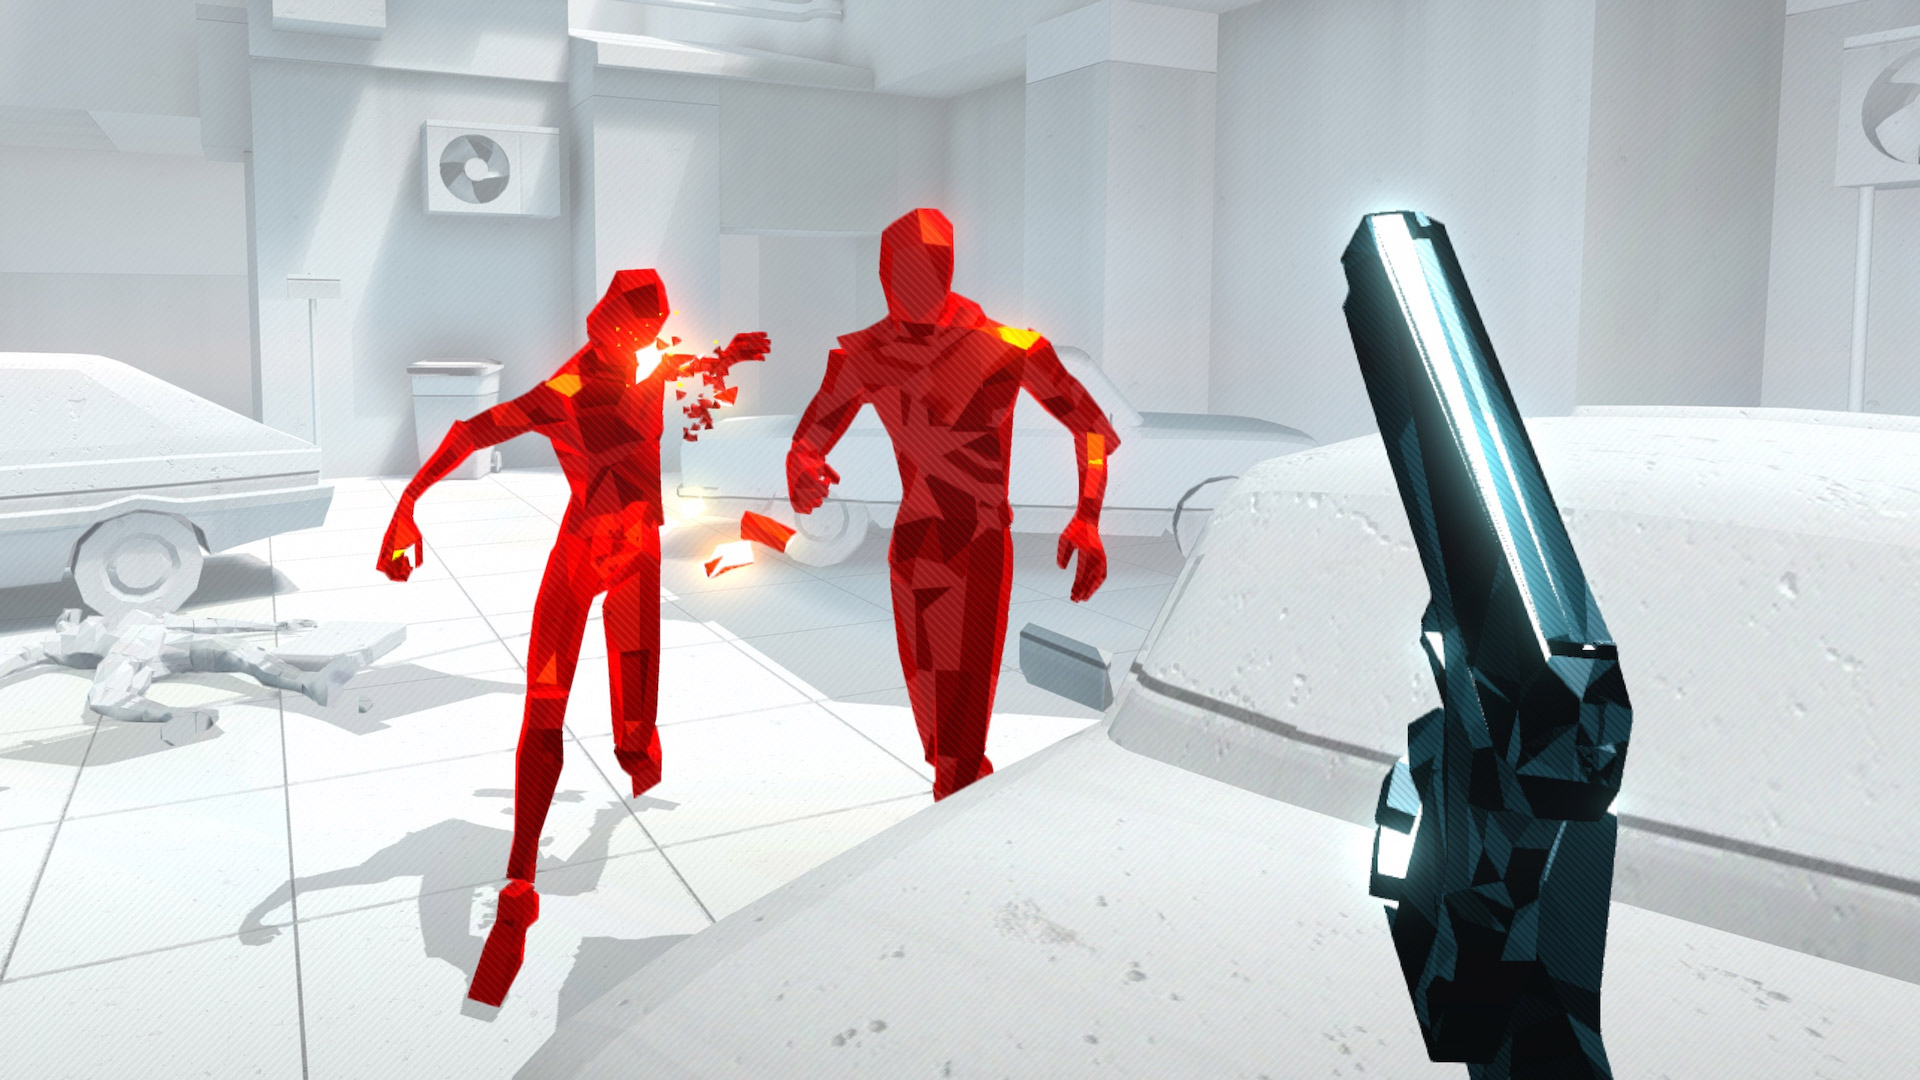 E3 2017 - Superhot VR Coming in a Few Weeks